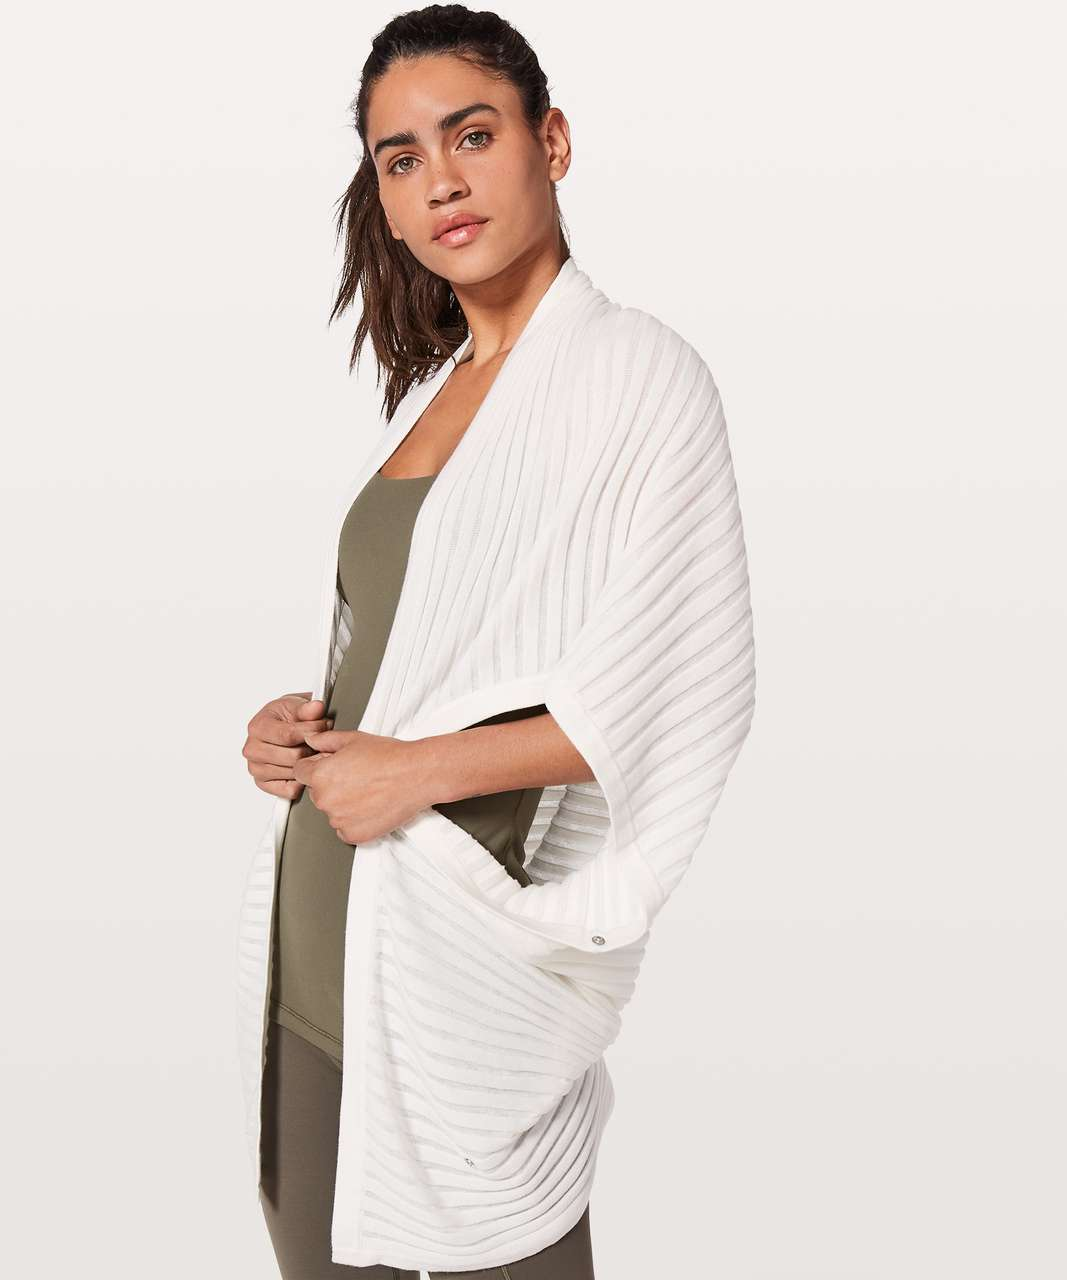 Lululemon Rejuvenate Wrap *Transformational (Stripe) - White